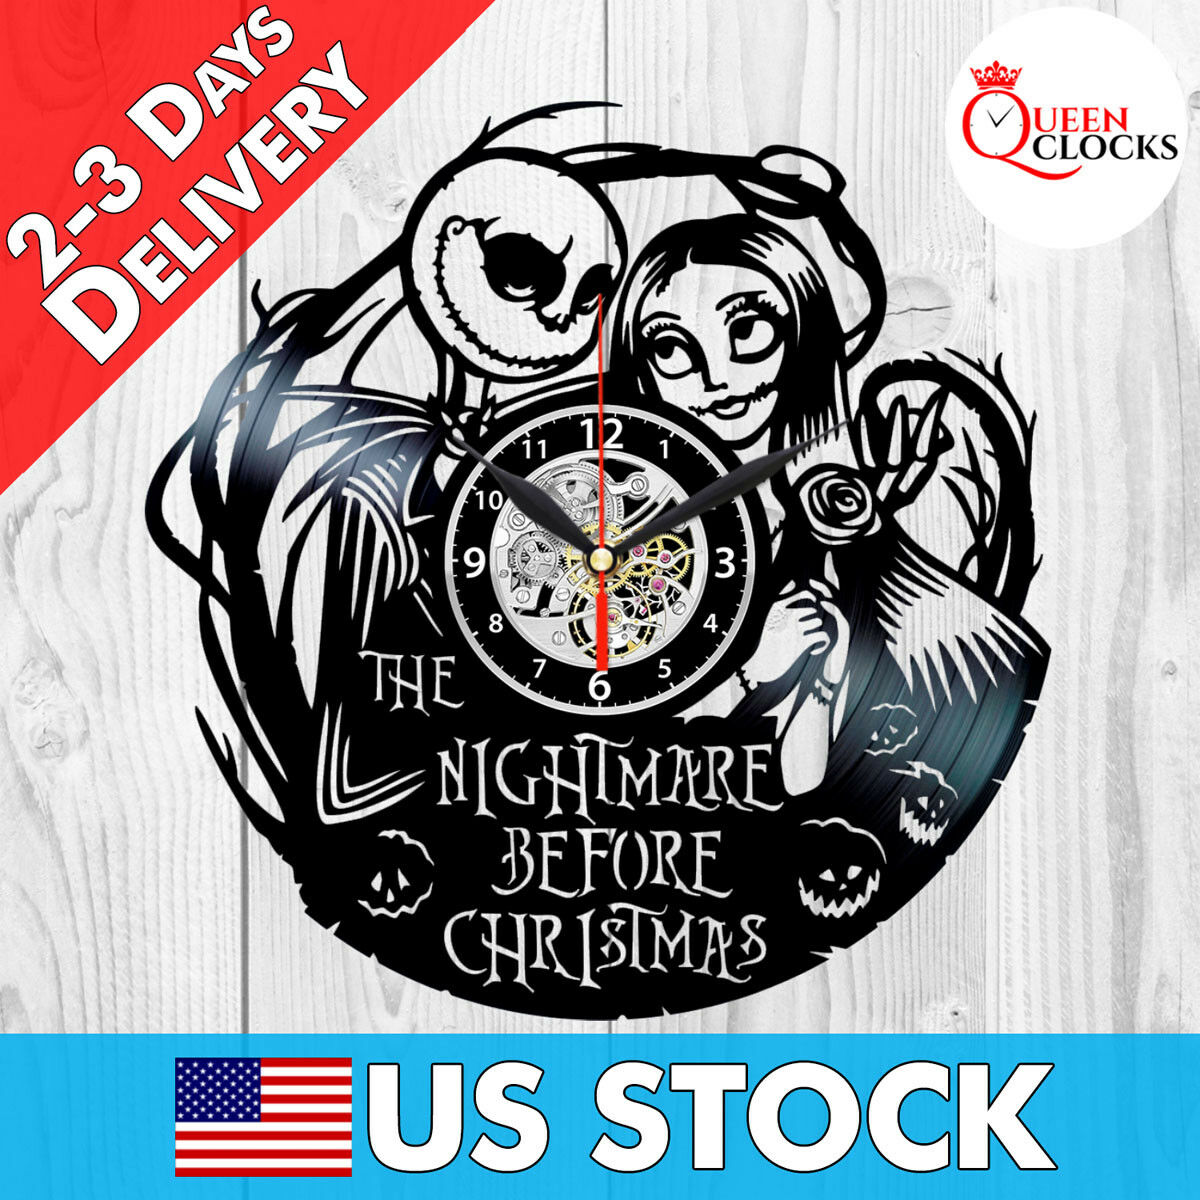 jack skellington sally nightmare before christmas vinyl record wall clock gifts 1 of 5 see more